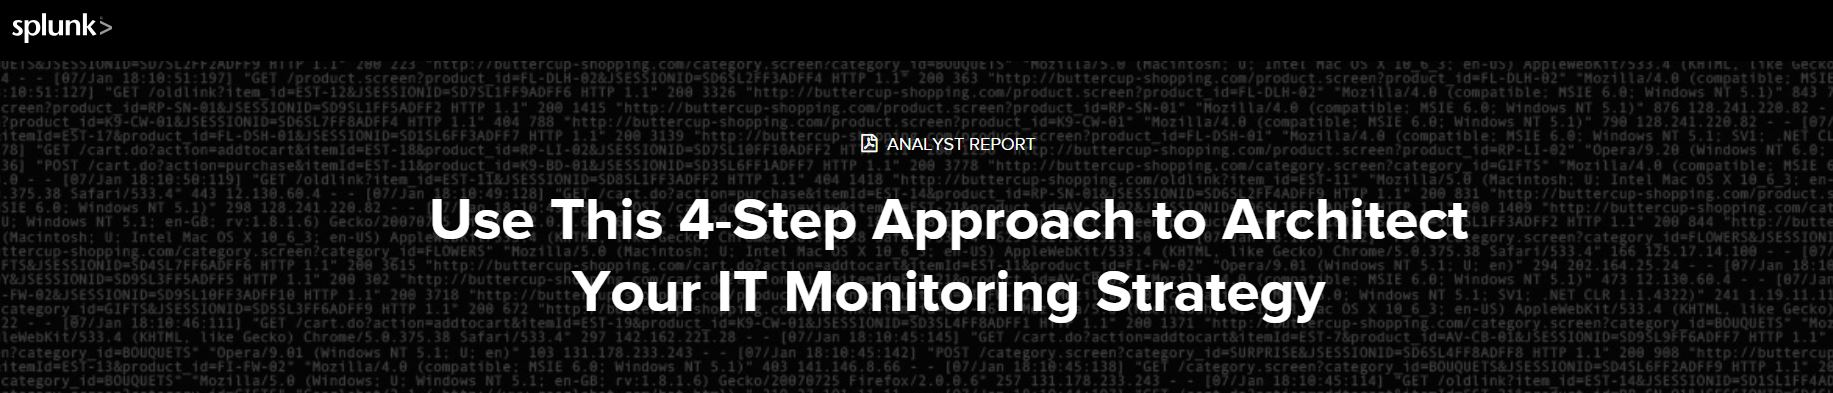 4 step approach to architecting your IT monitoring strategy